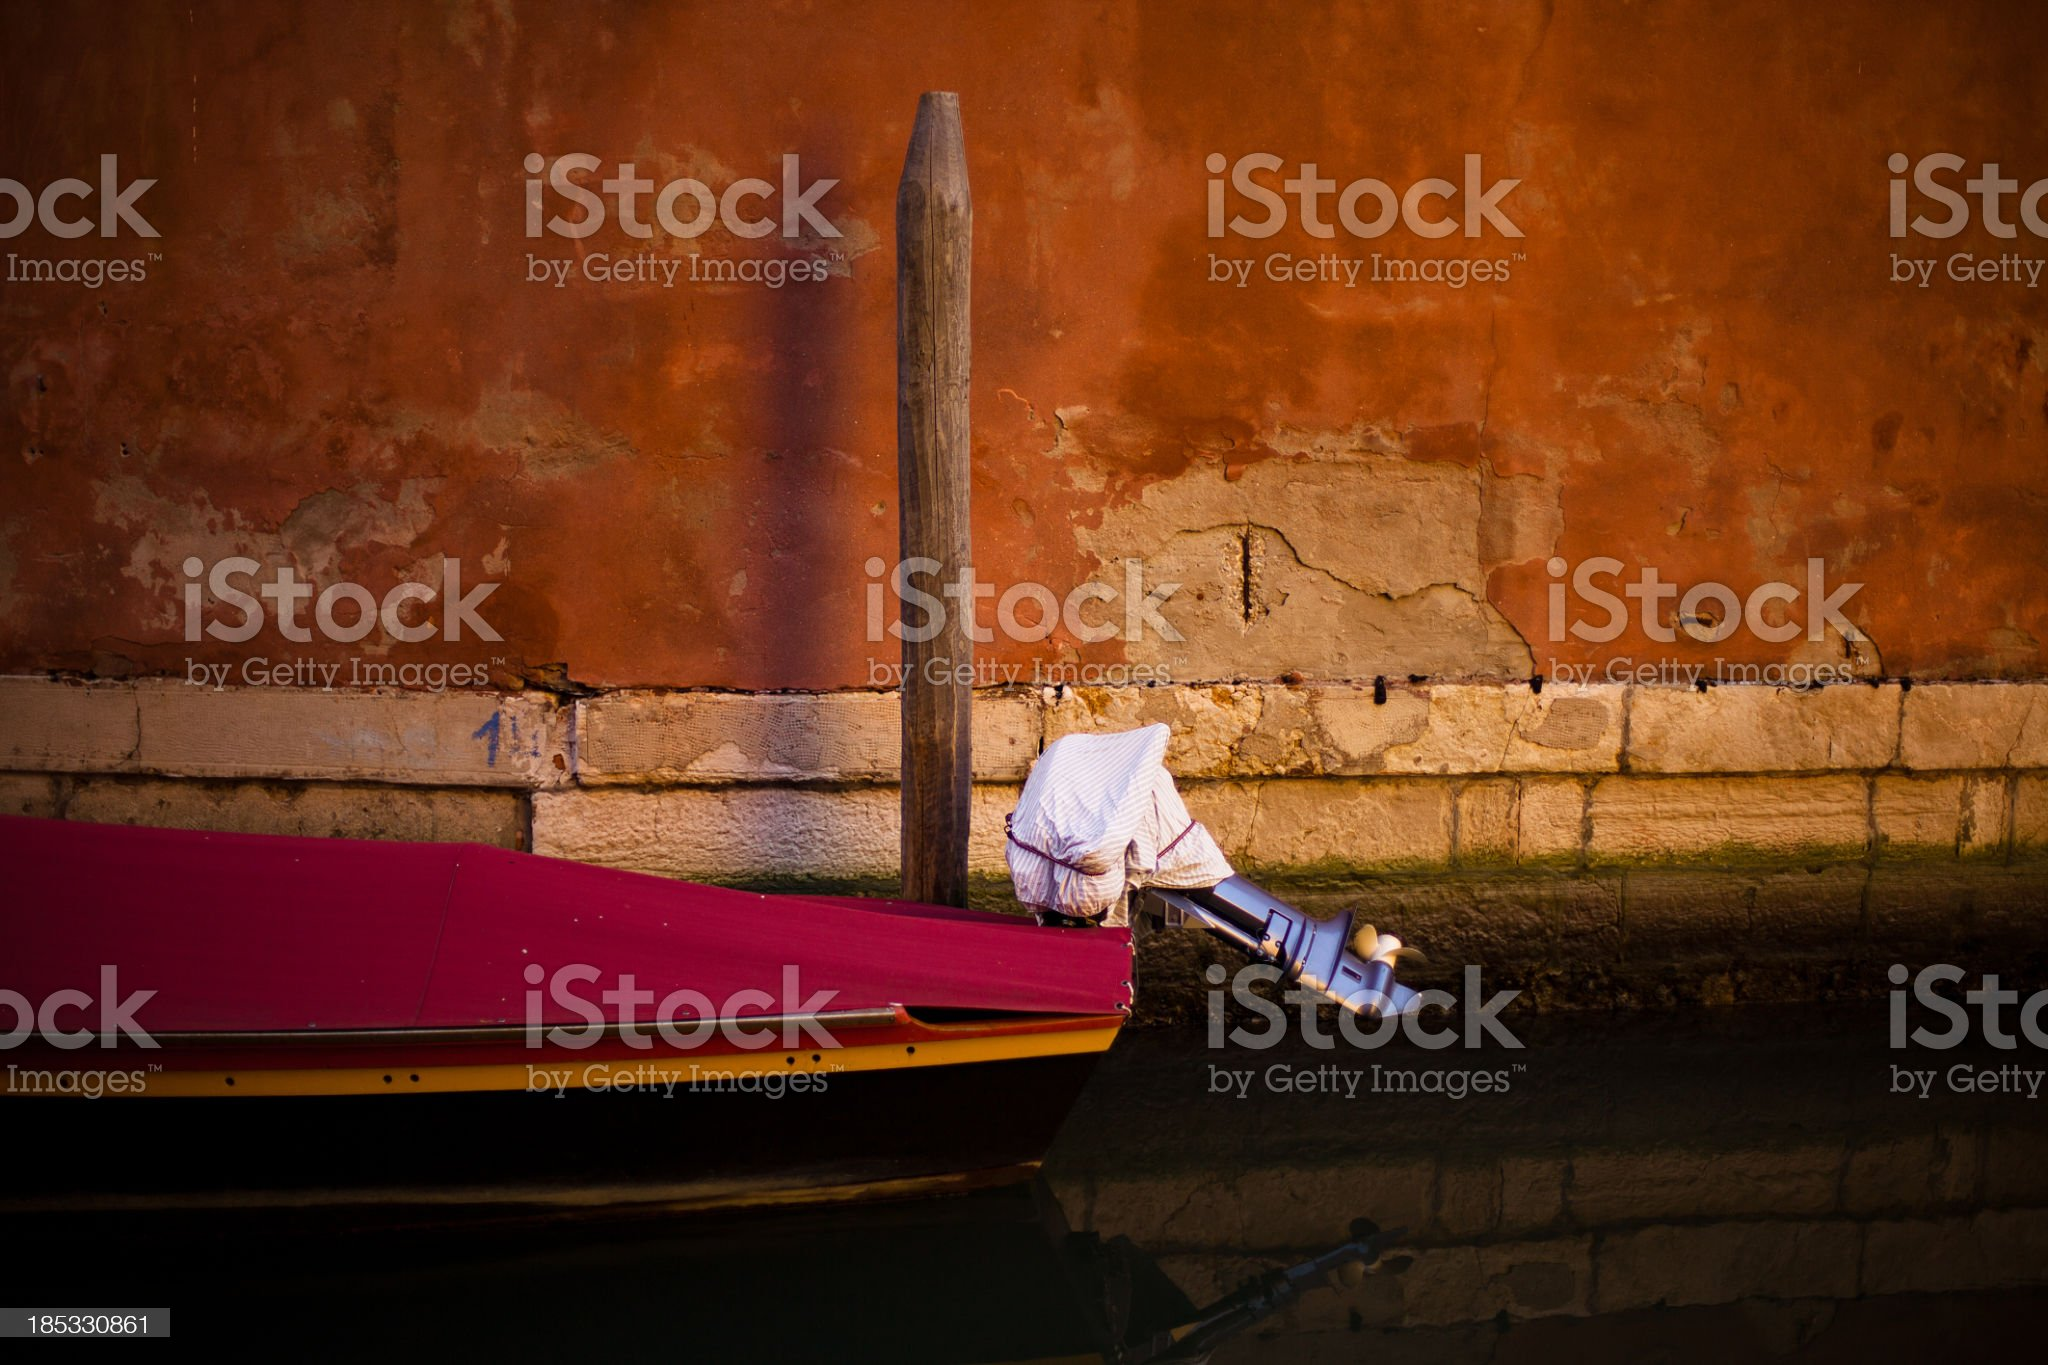 Docked Outboard Motorboat in Venice, Italy royalty-free stock photo